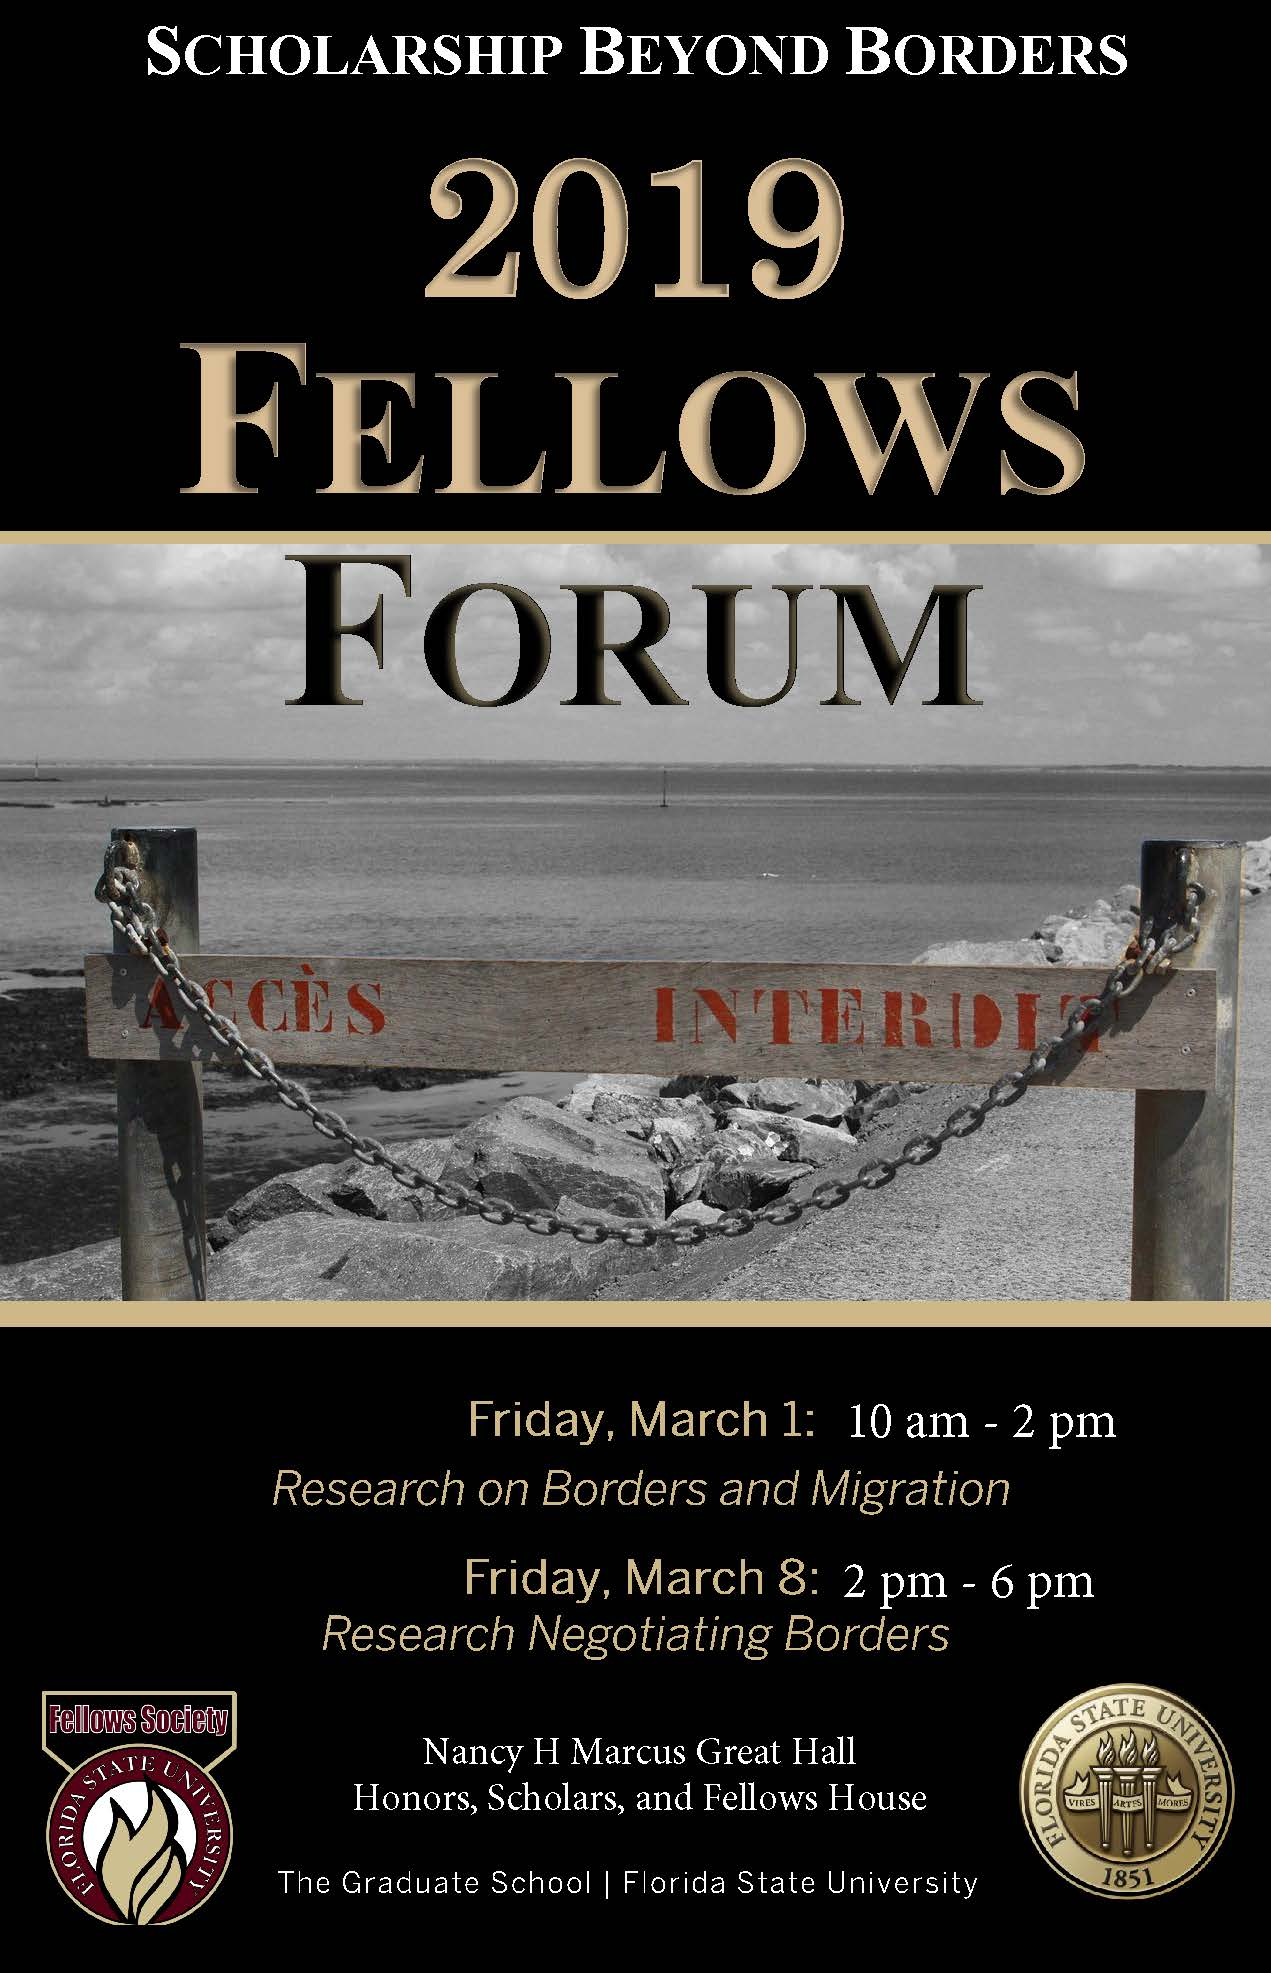 2019 Fellows Forum Flyer2.jpg